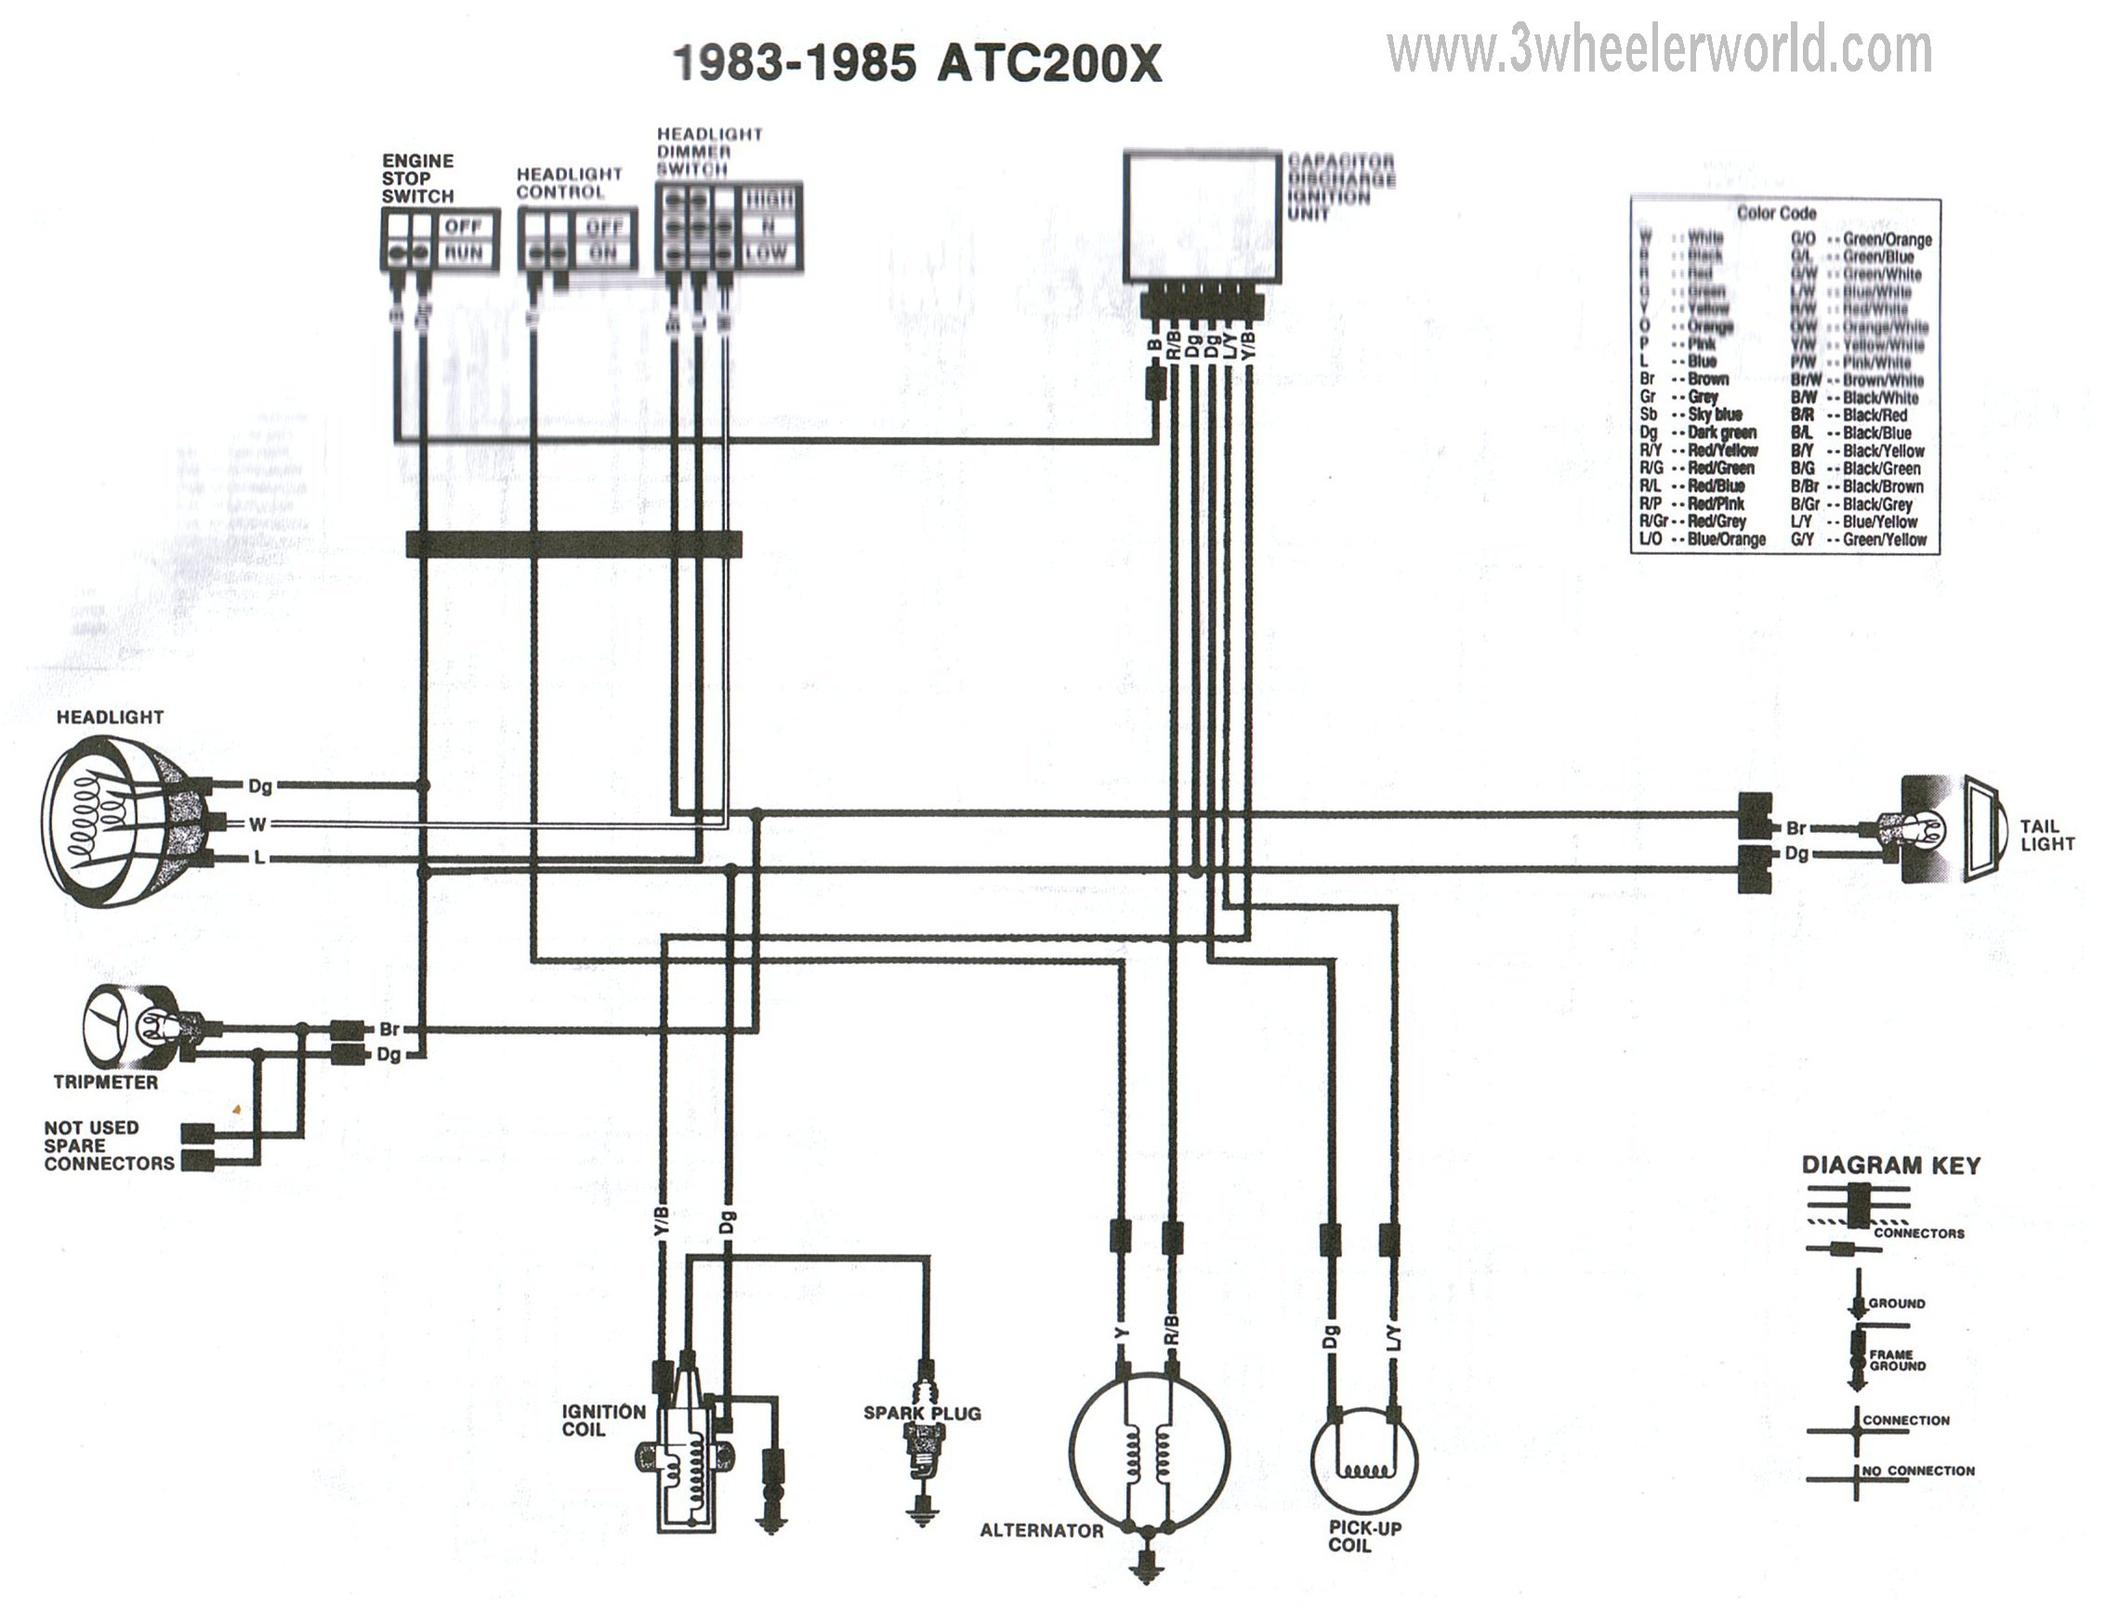 3wheeler World Honda Atc Wiring Diagrams Further Relay Diagram On Basic For Alternator Article Preview